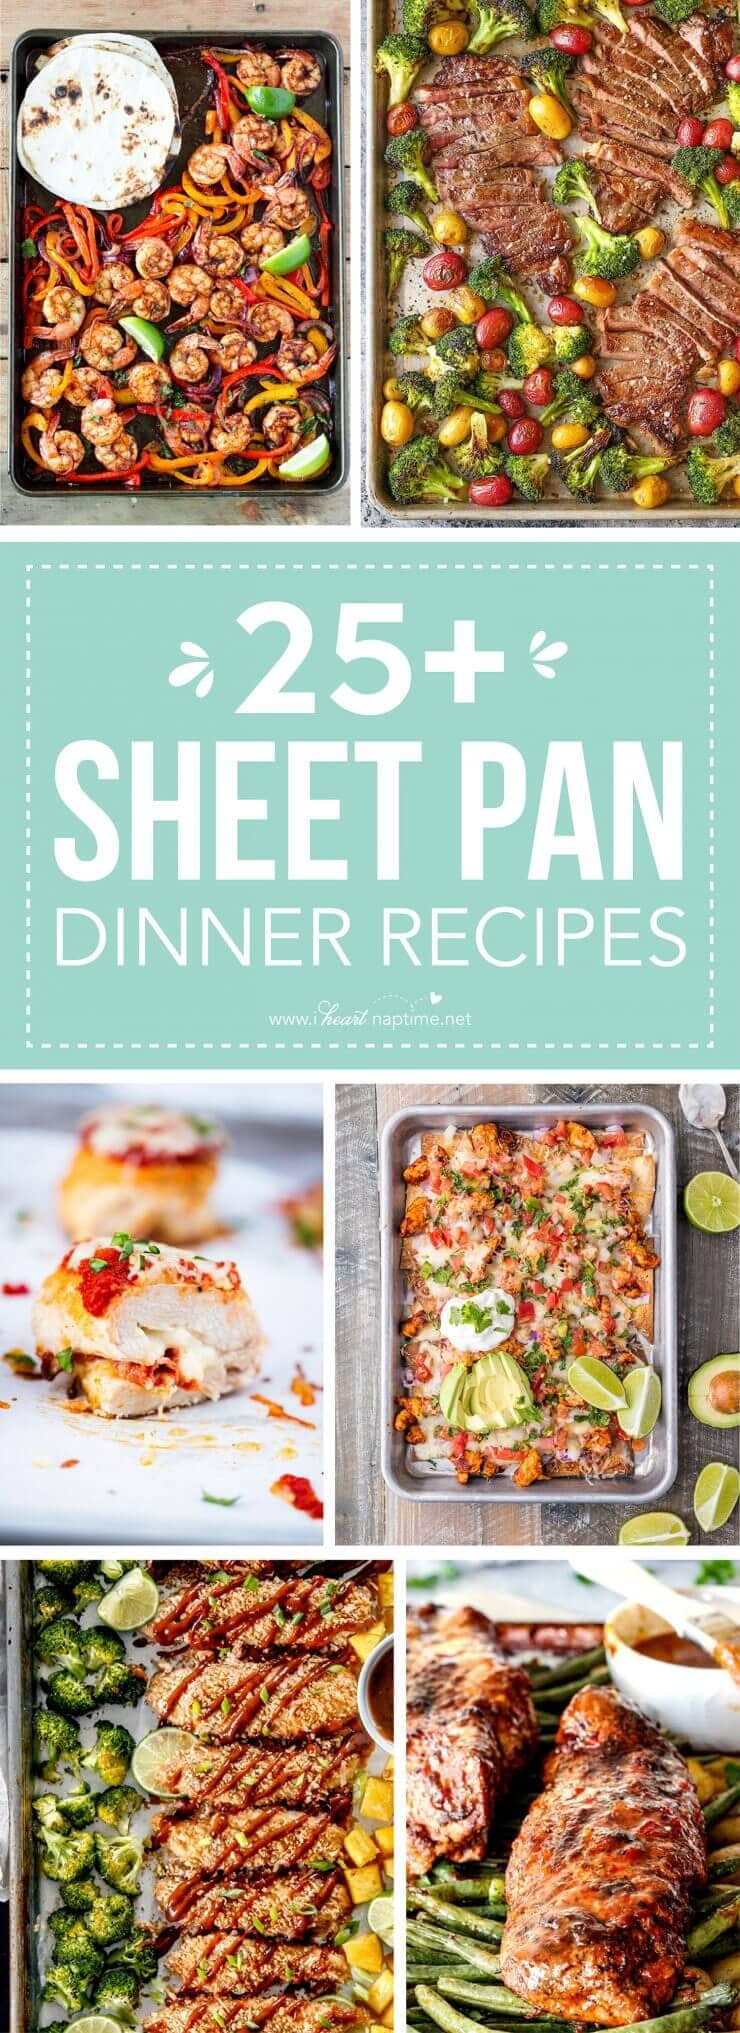 Healthy Sheet Pan Dinners  25 Delicious Sheet Pan Dinner Recipes I Heart Nap Time